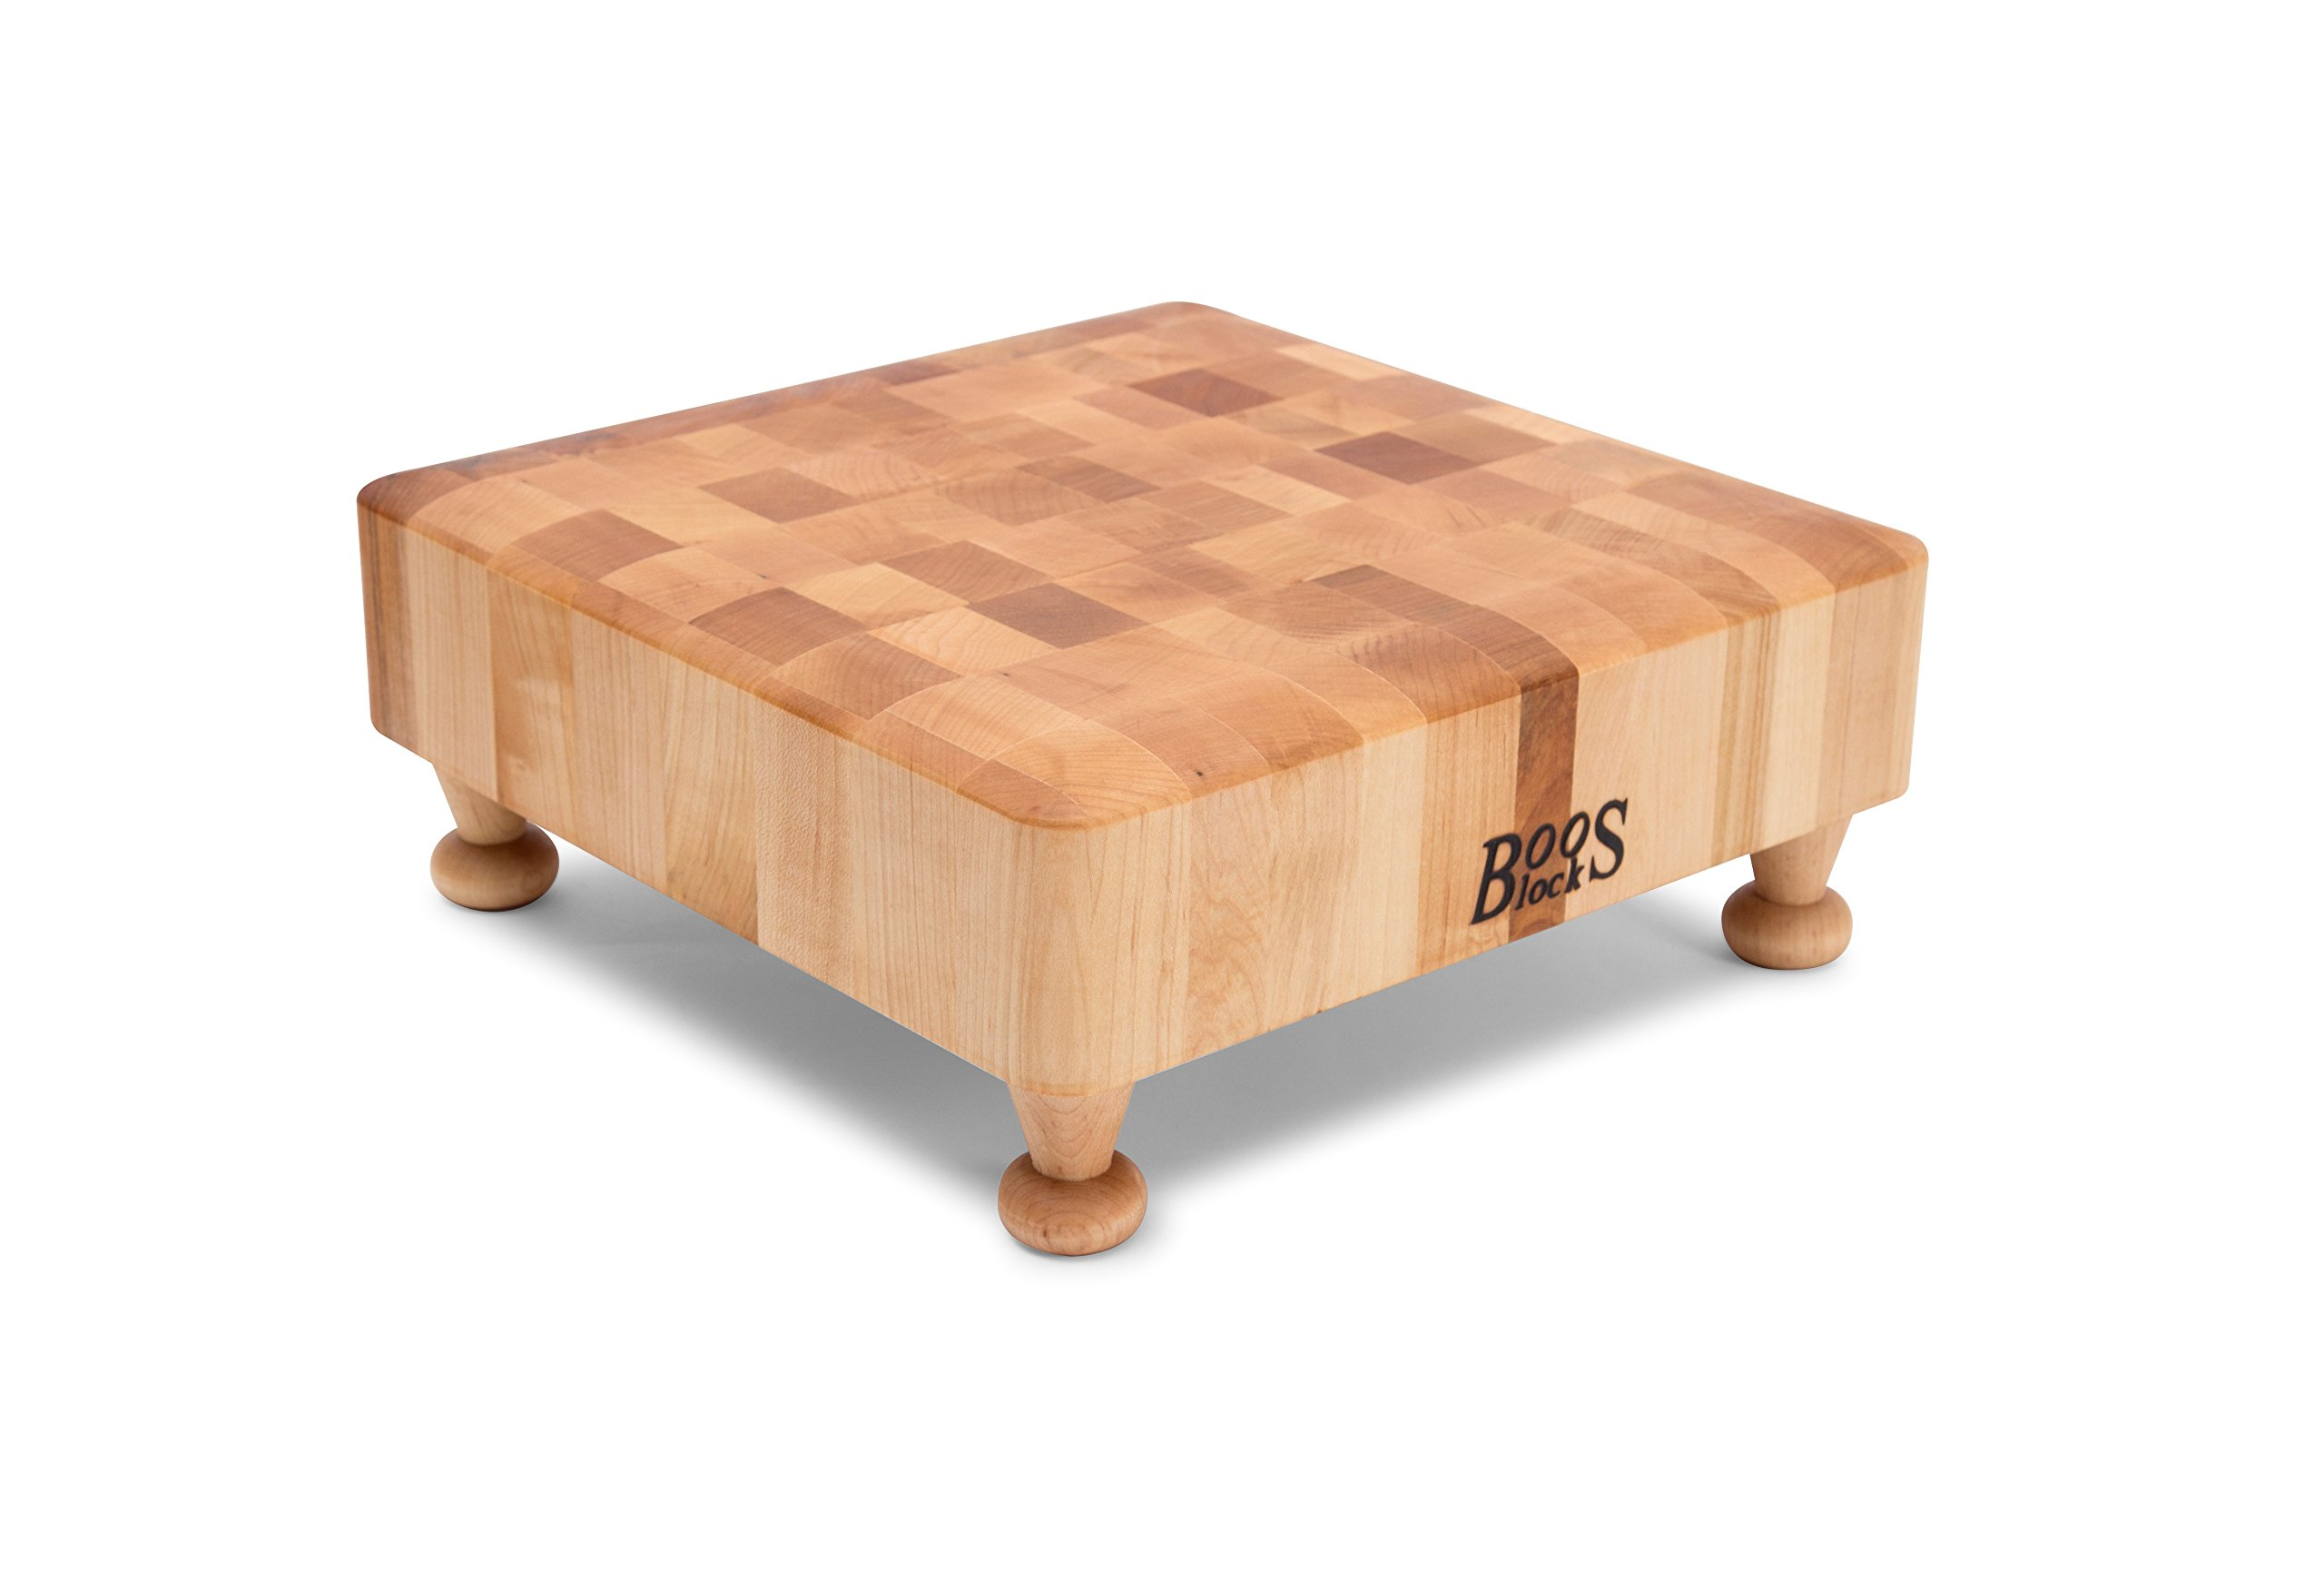 John Boos Raised Maple Wood Square End Grain Chopping Block with Tapered Feet, 12 Inches x 12 Inches x 3 Inches